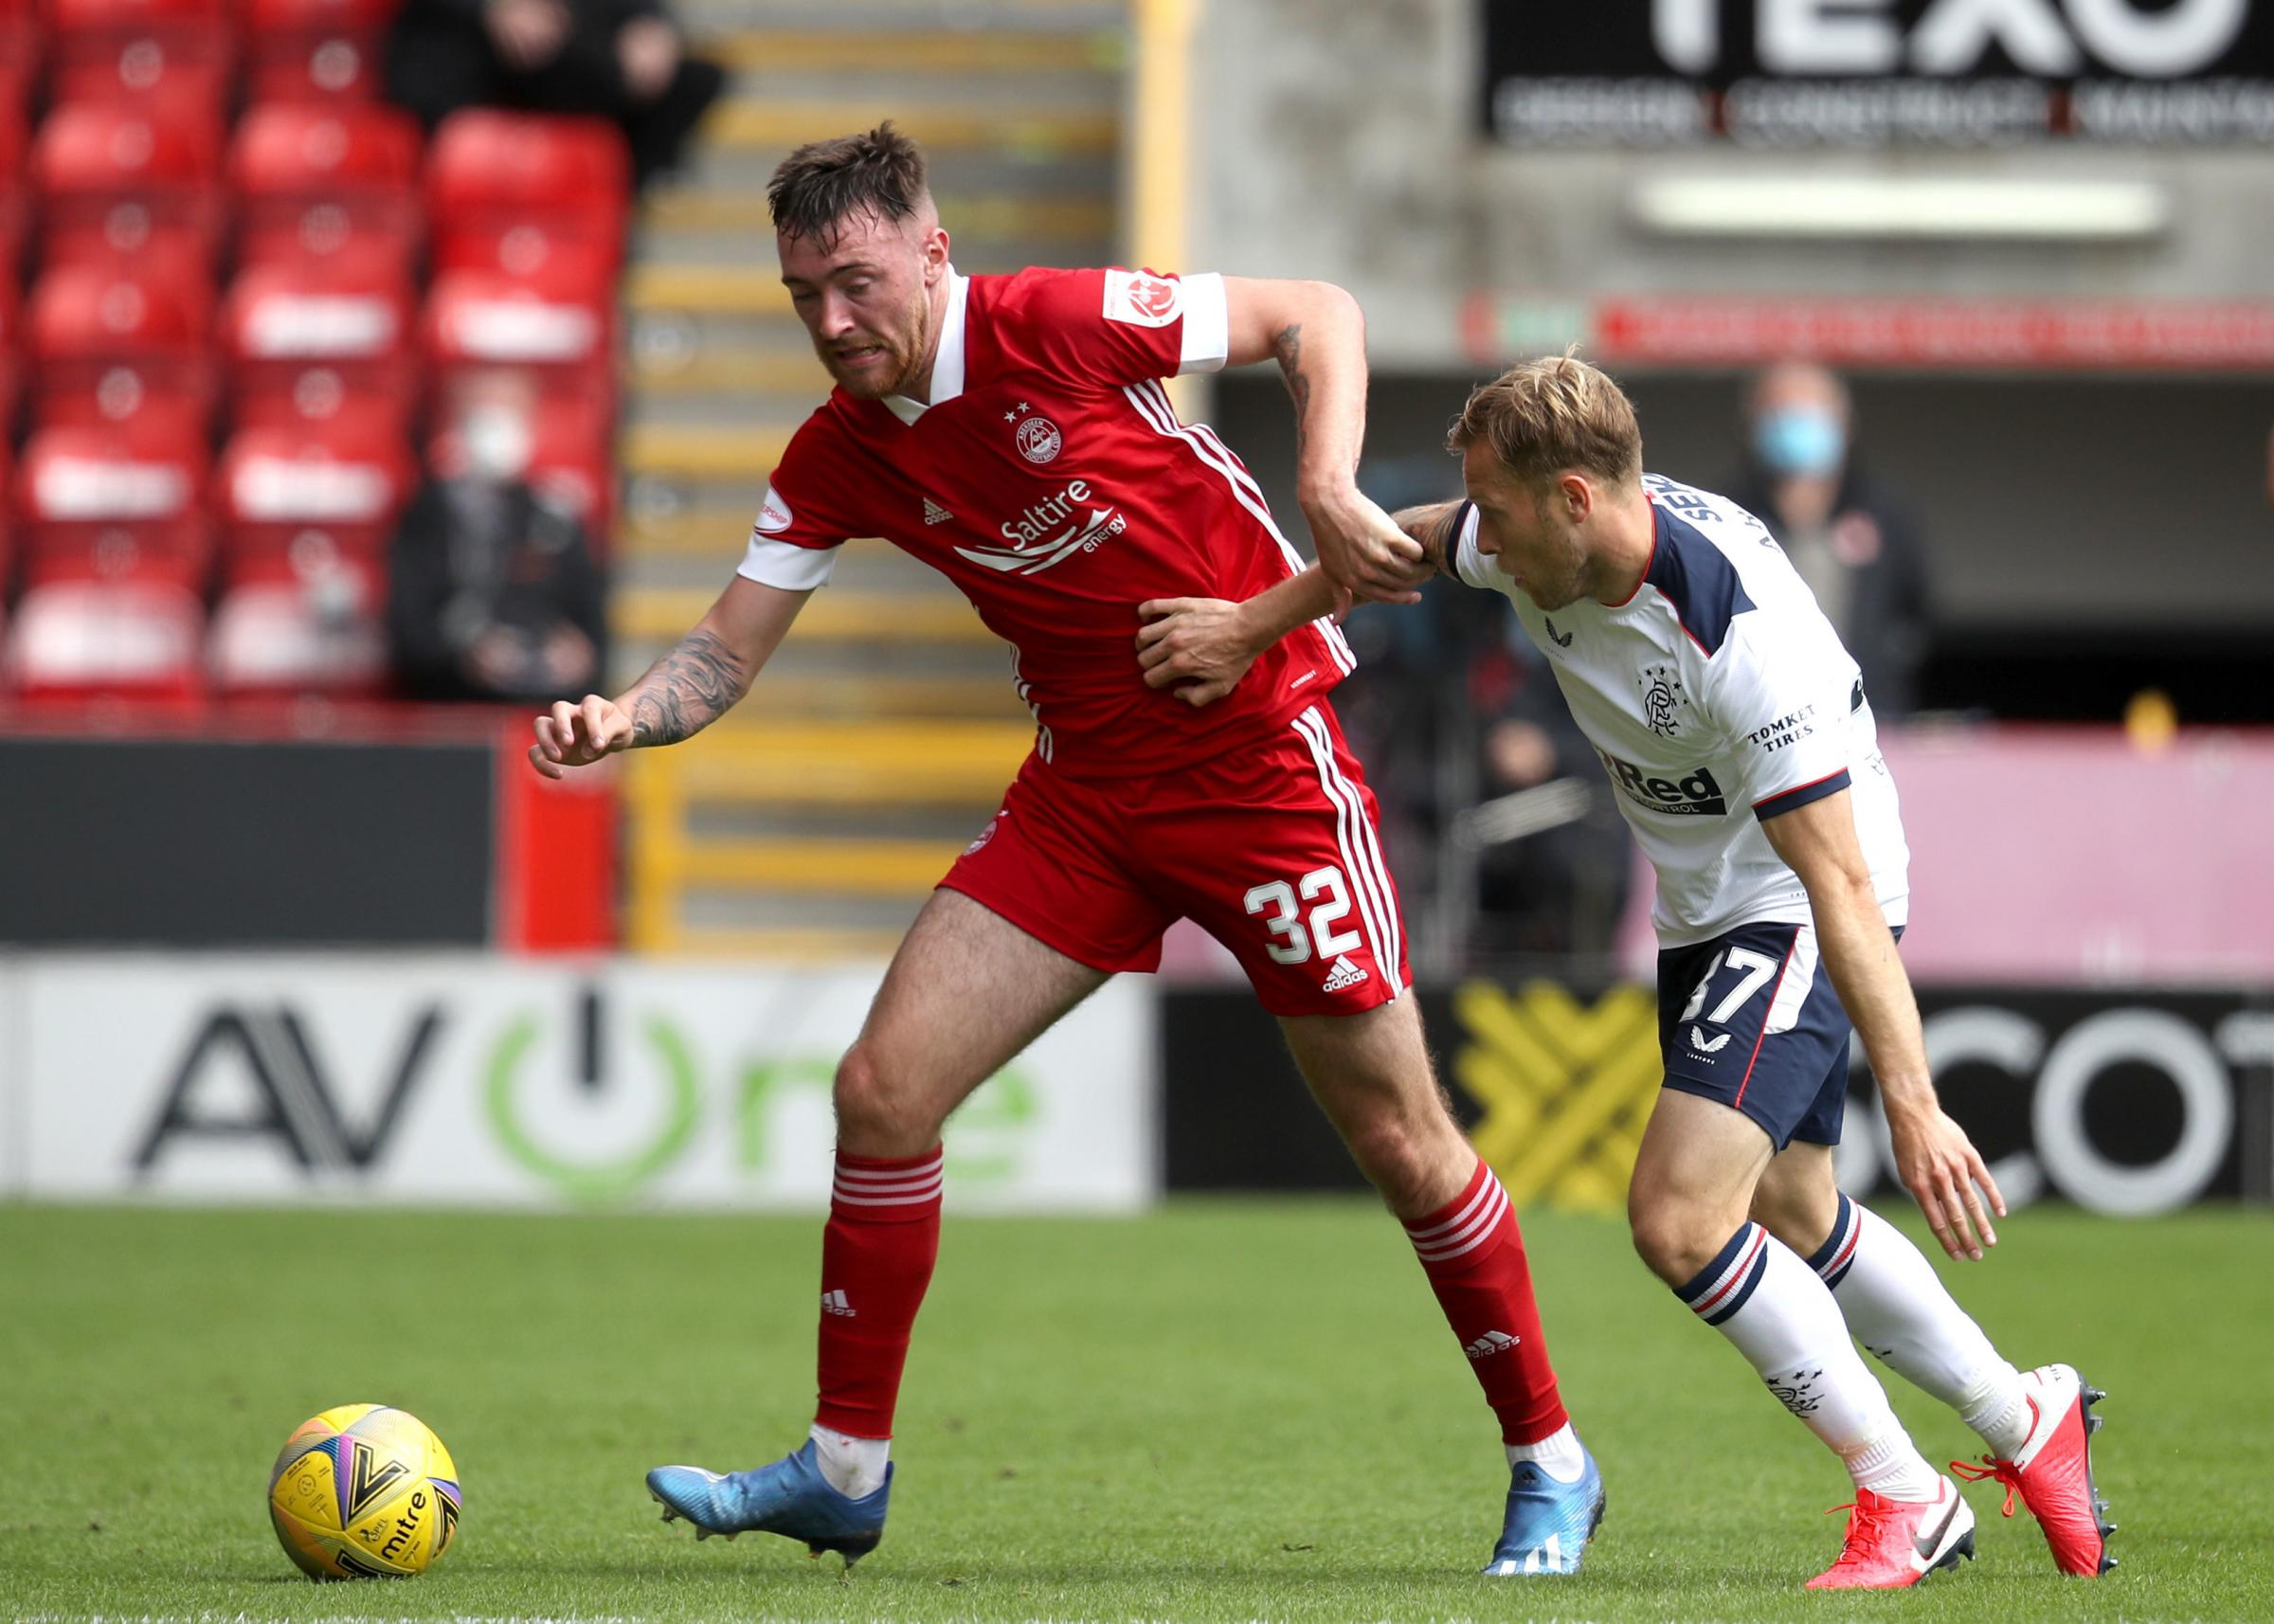 Aberdeen's striker crisis deepens as Leeds United loanee Ryan Edmondson is ruled out for up to four months